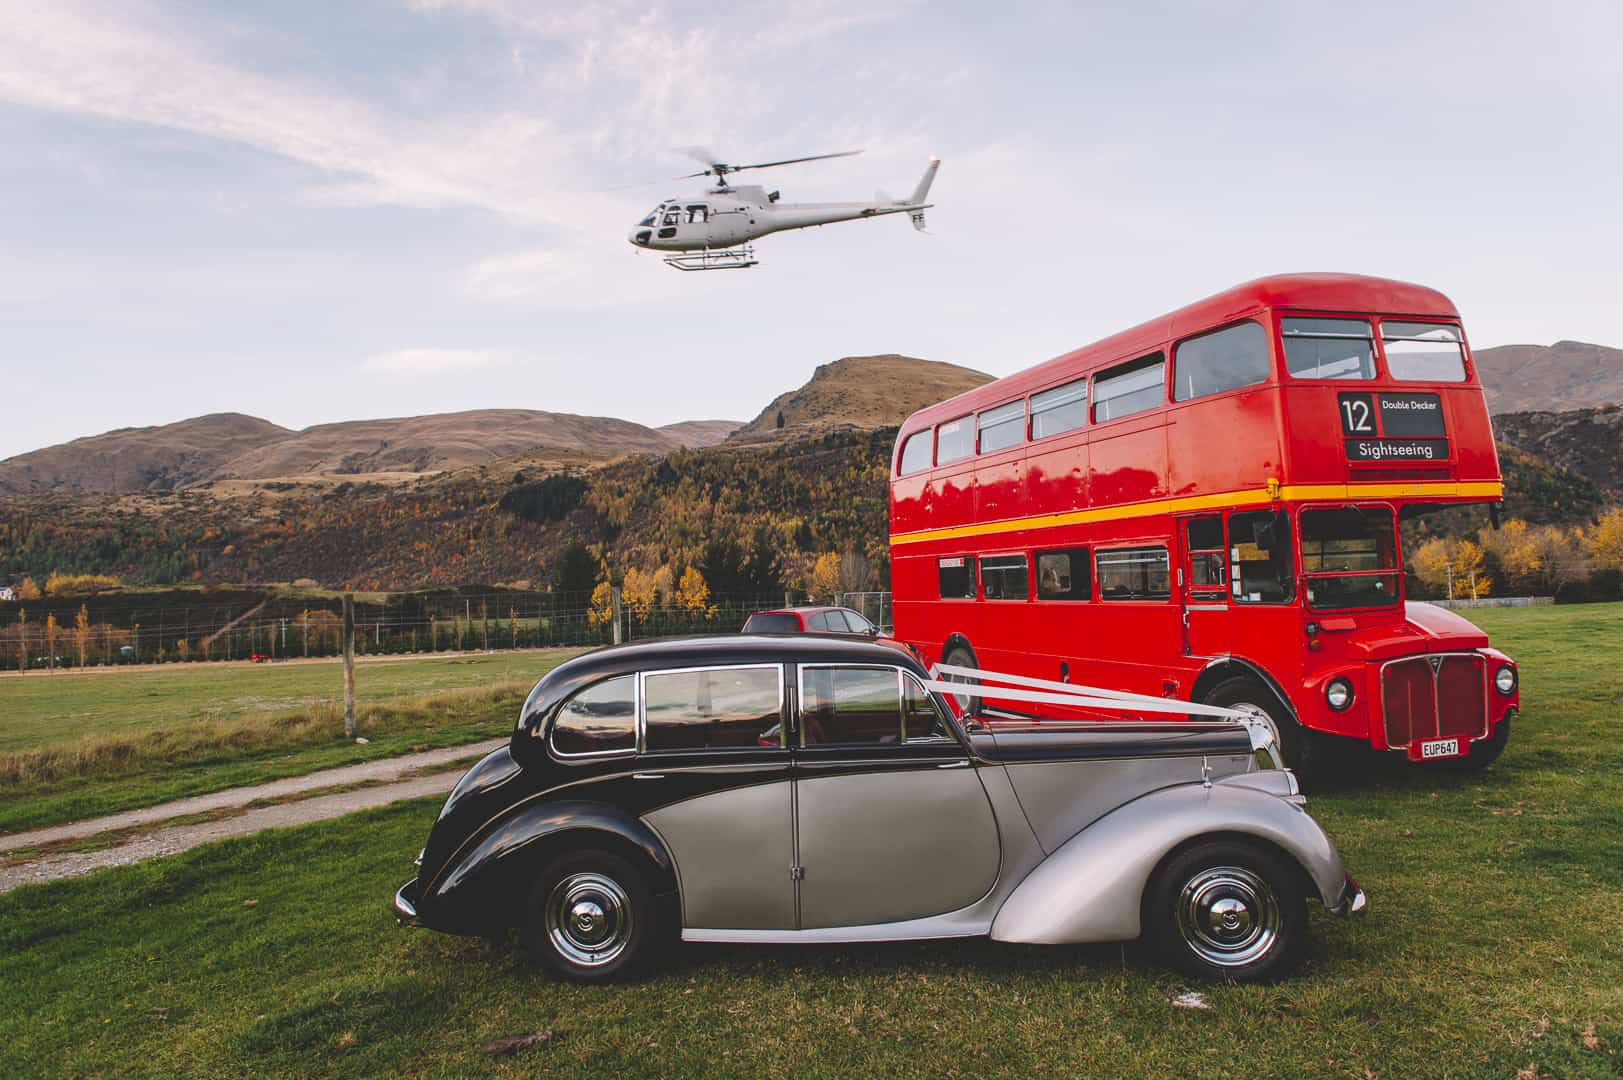 queenstown wedding transport helicopter car double decker bus